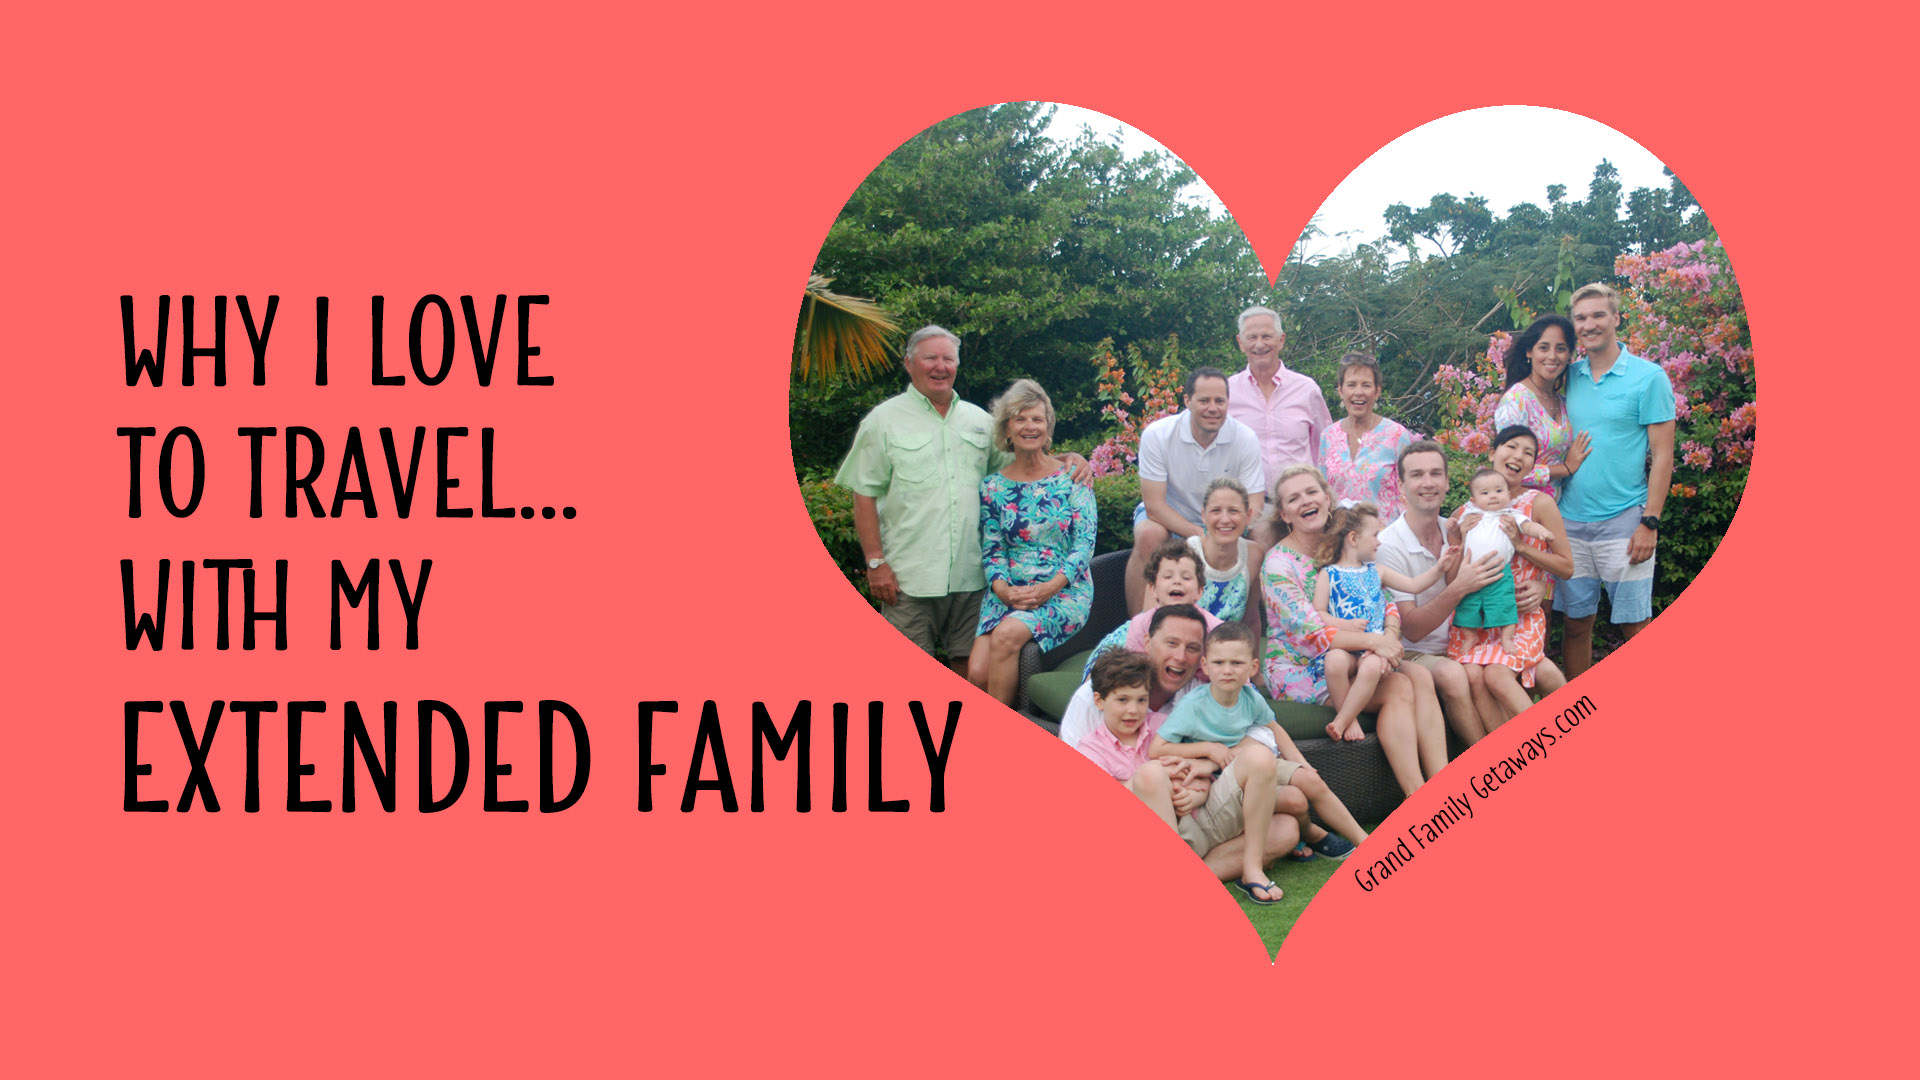 Why I love travel with my extended family